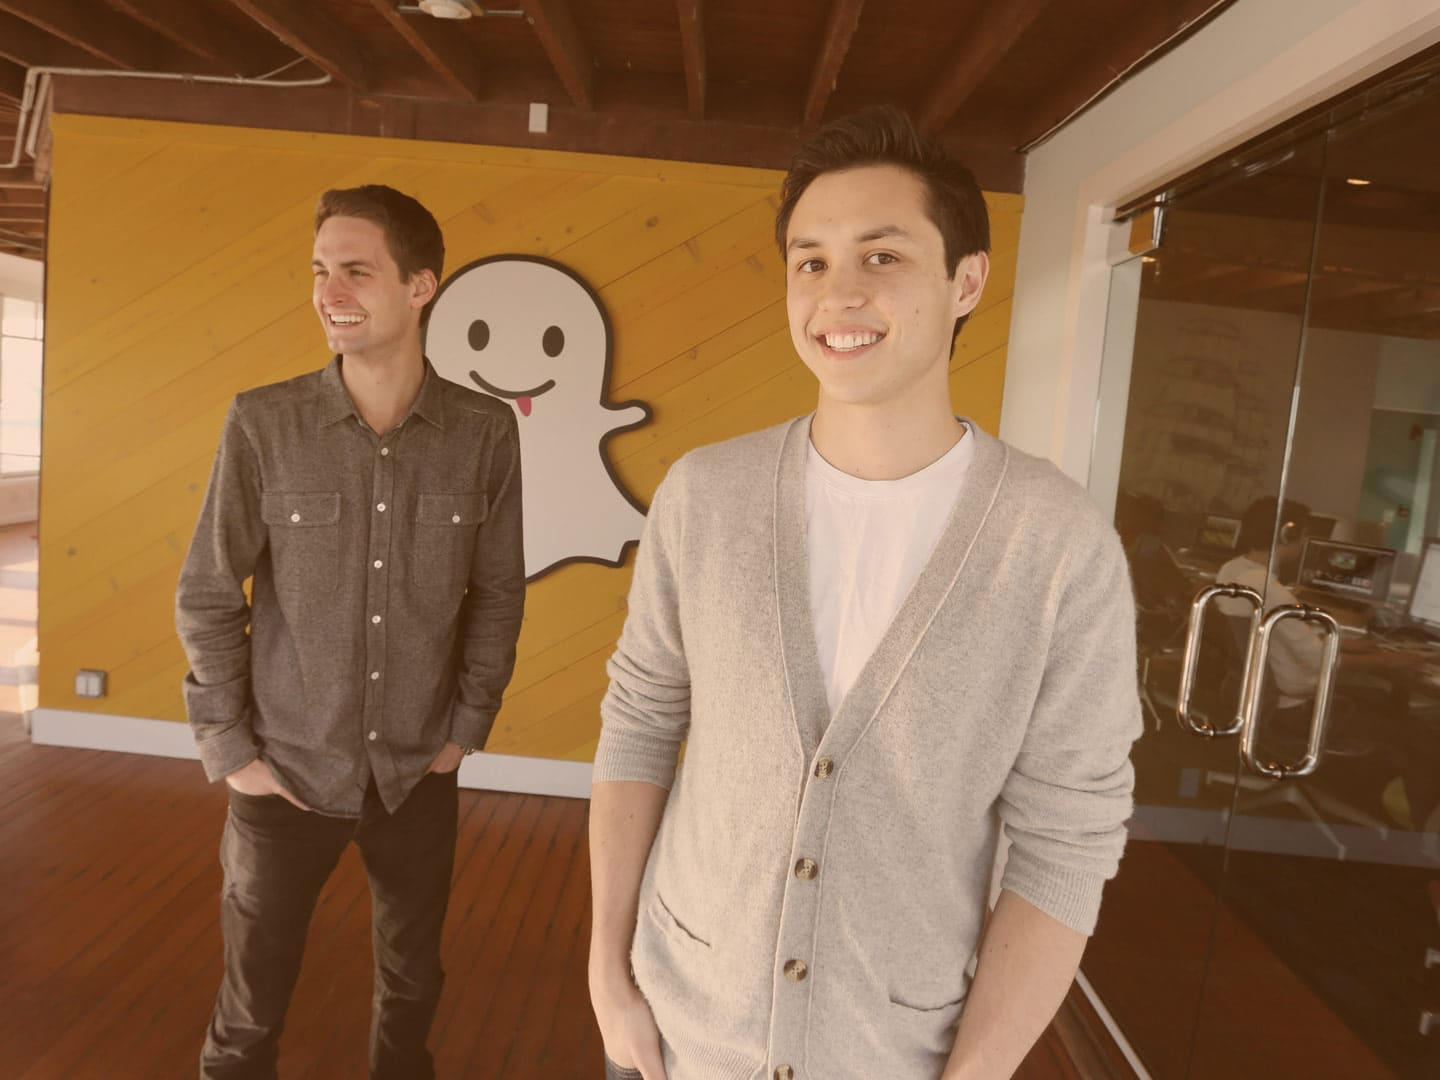 Bobby Murphy with Snapchat founder